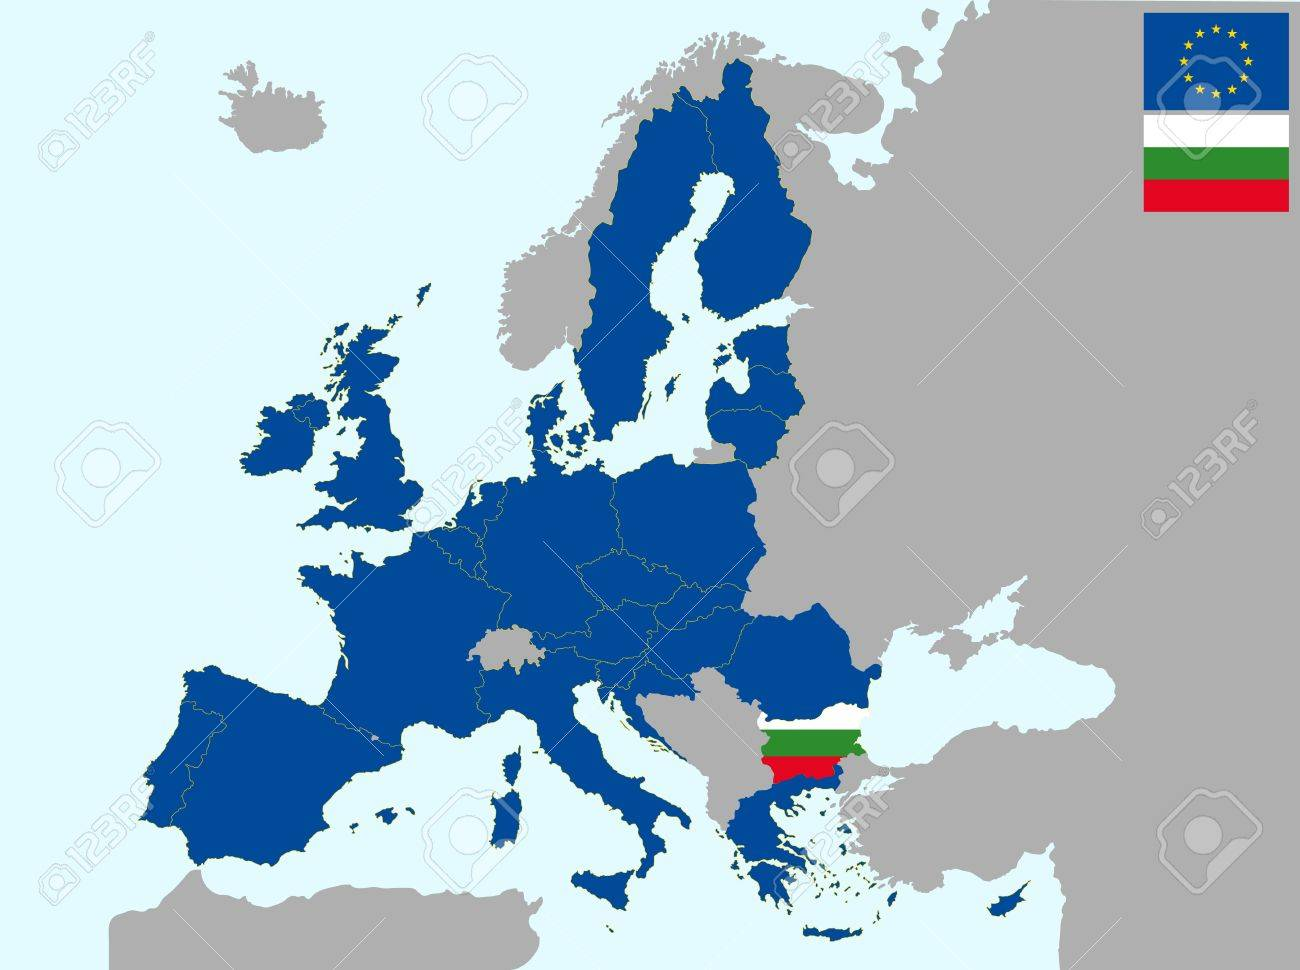 map of bulgaria in europe Illustration Of Europe Map With Flag Of Bulgaria, From 1 July